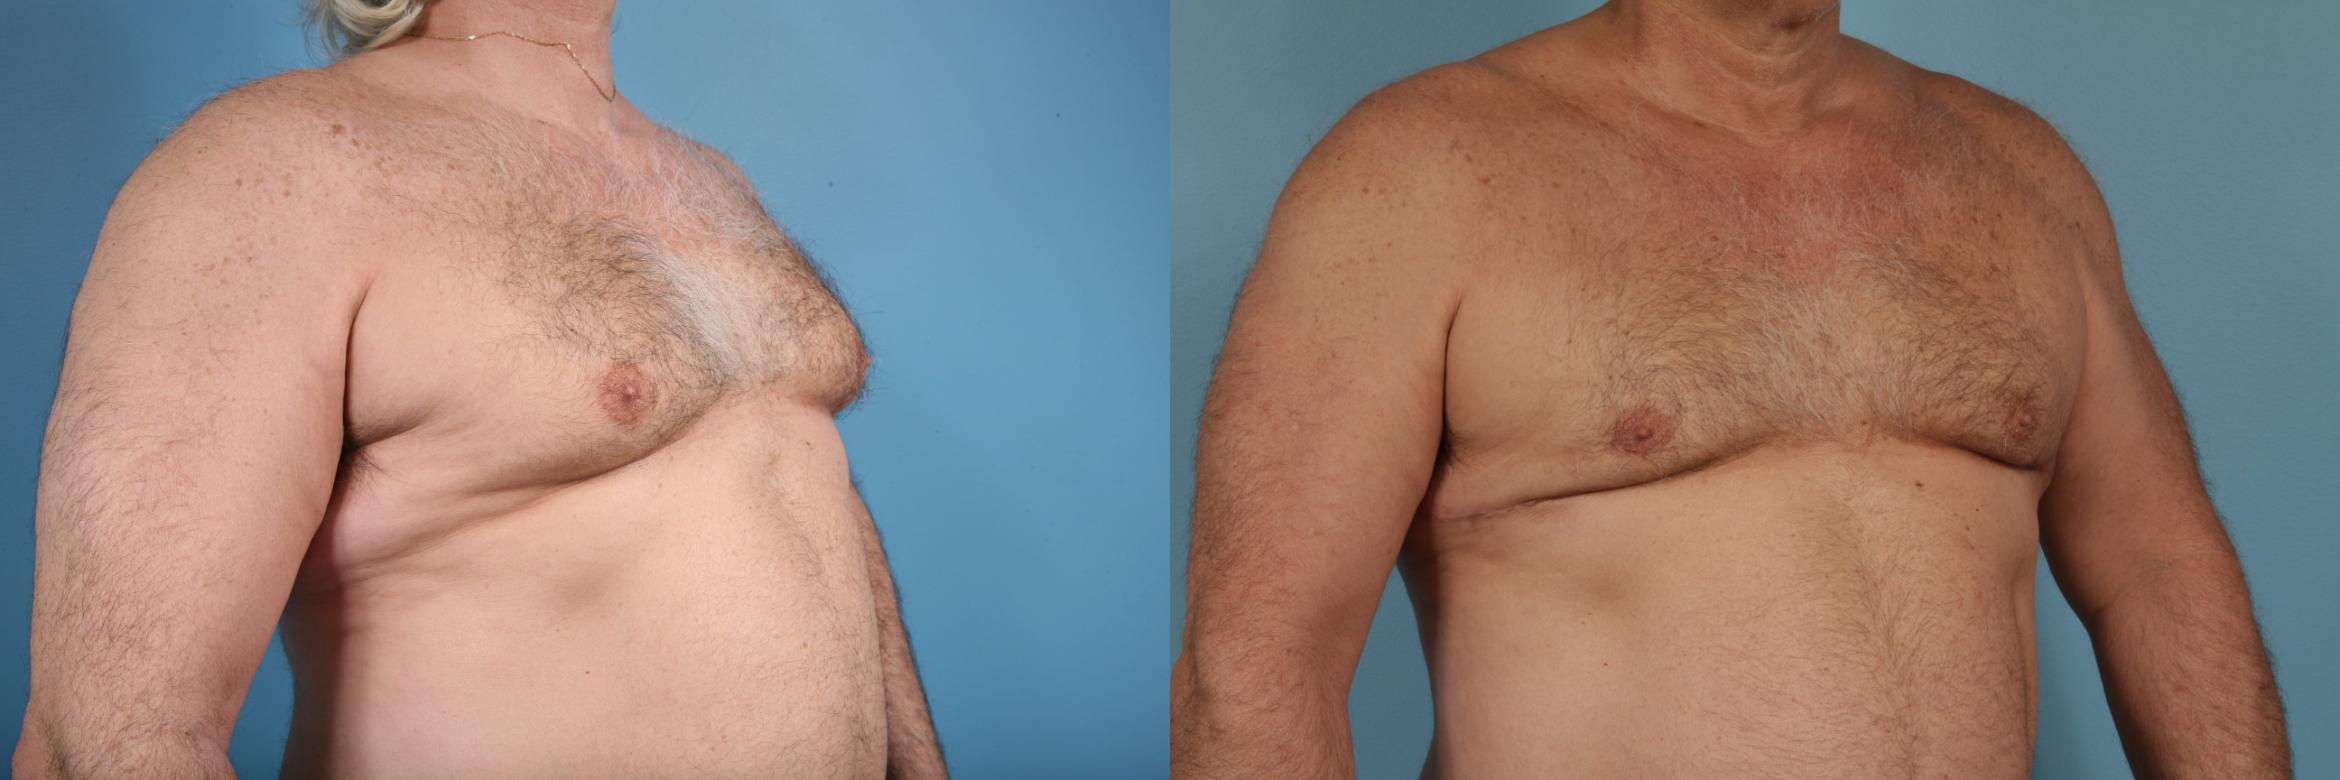 Male Breast Reduction (Gynecomastia) Case 174 Before & After View #3 | Chicago, IL | TLKM Plastic Surgery